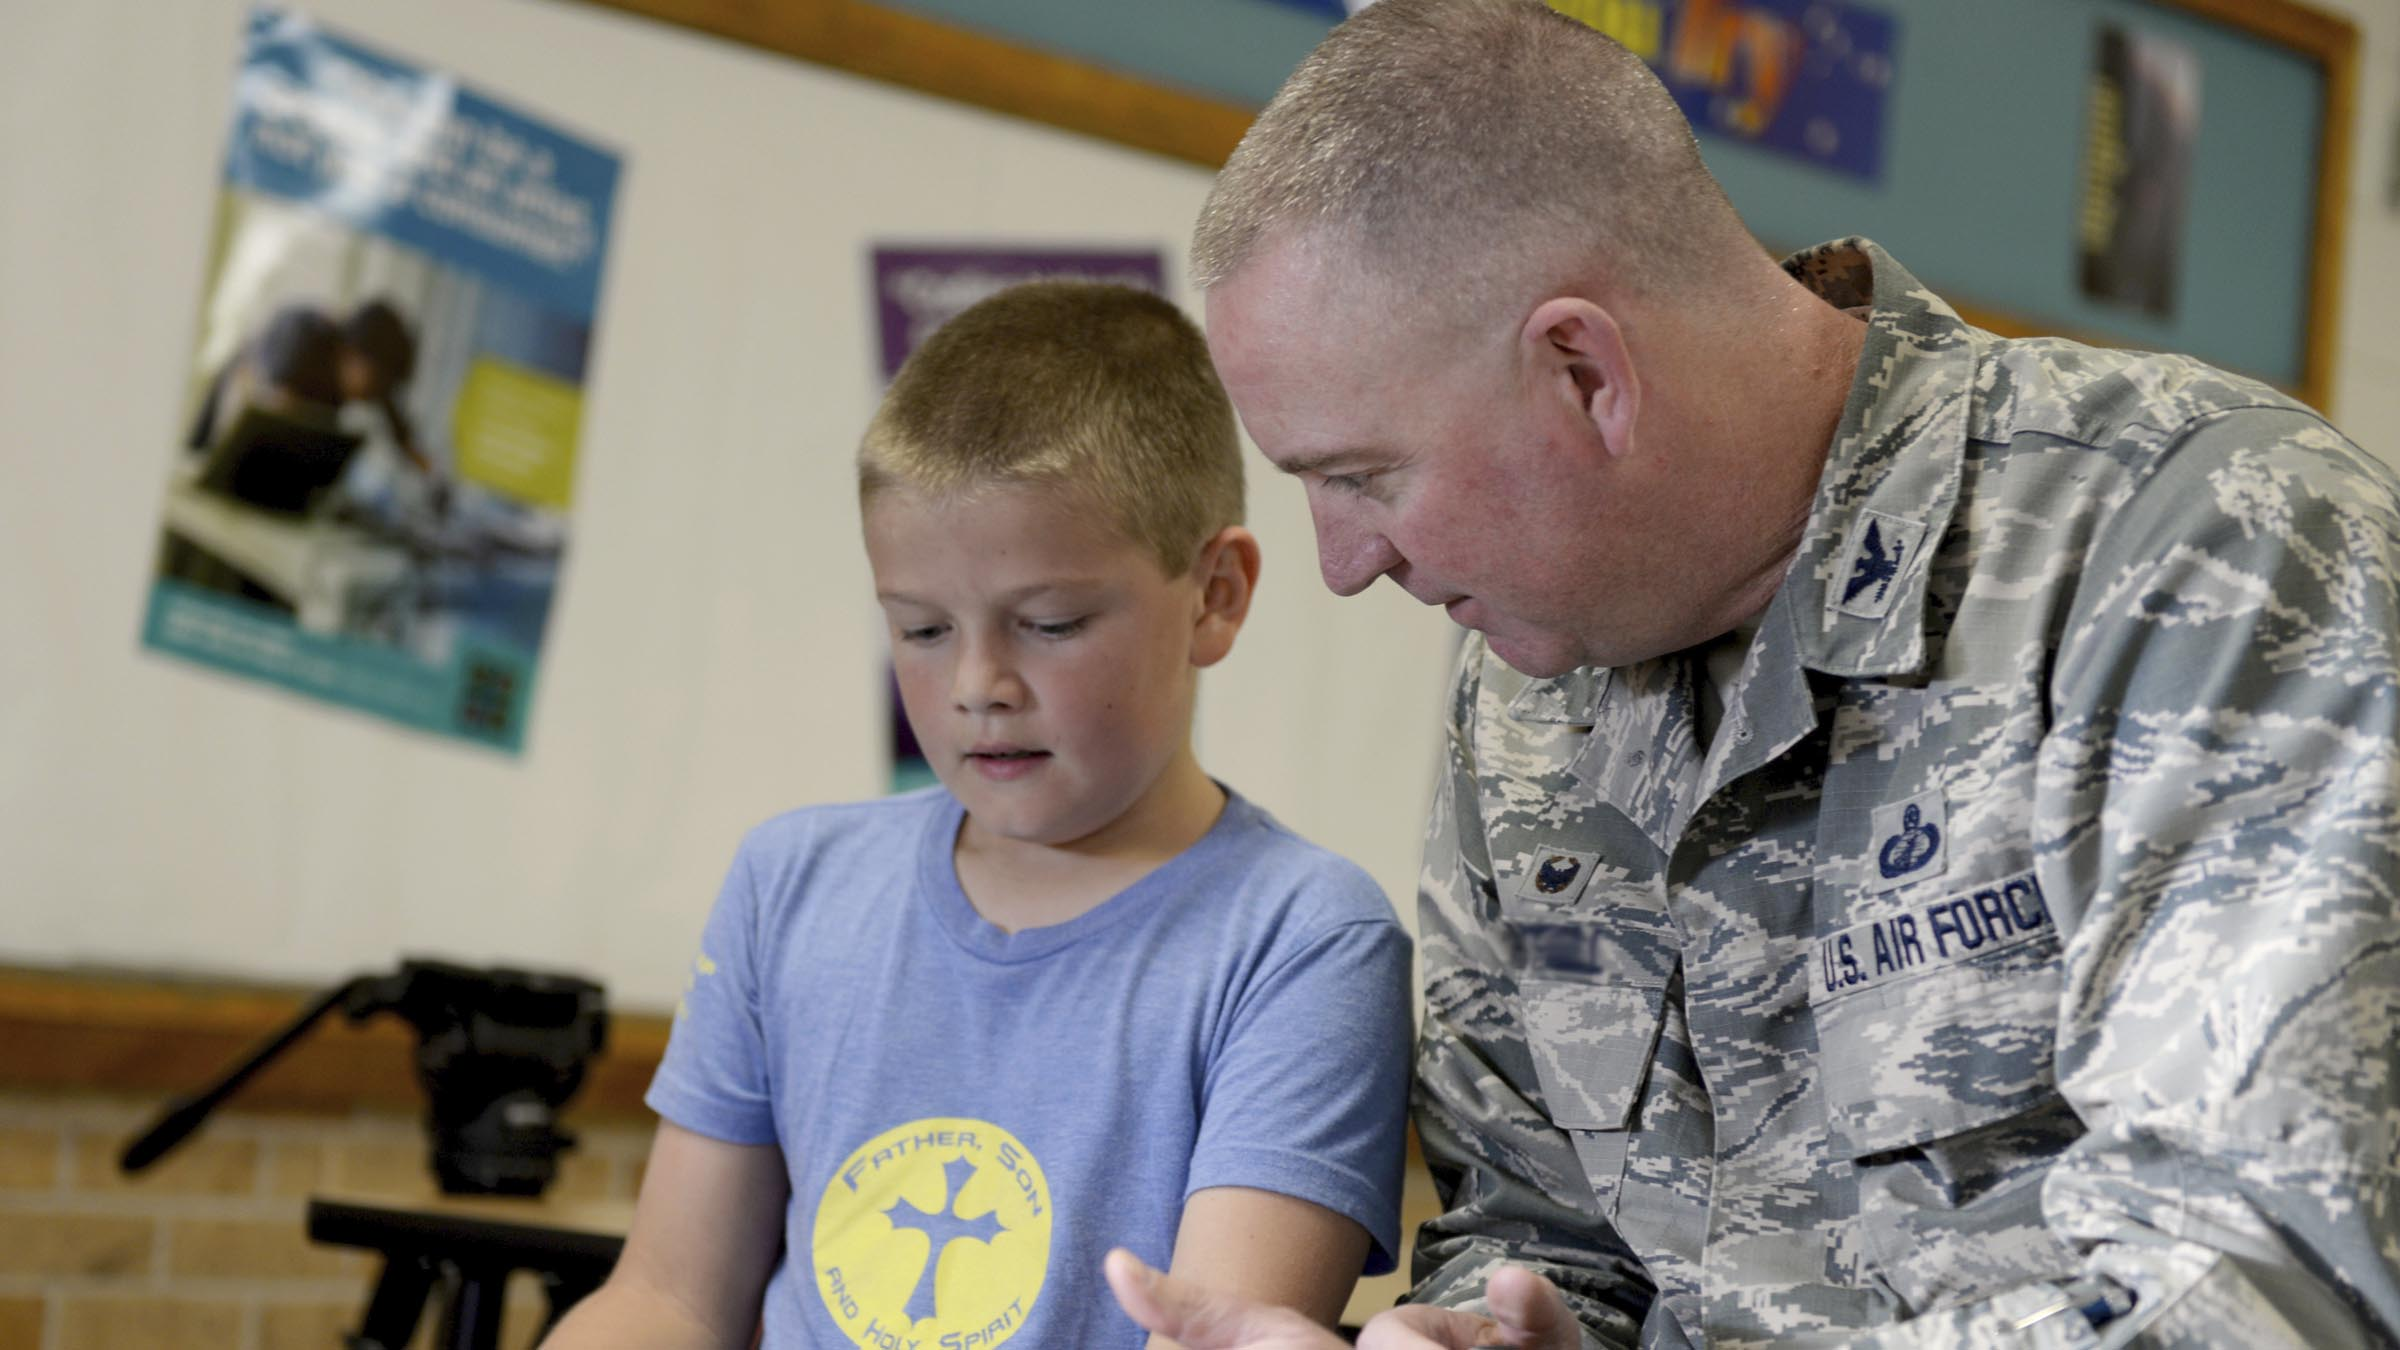 Service member and son working together